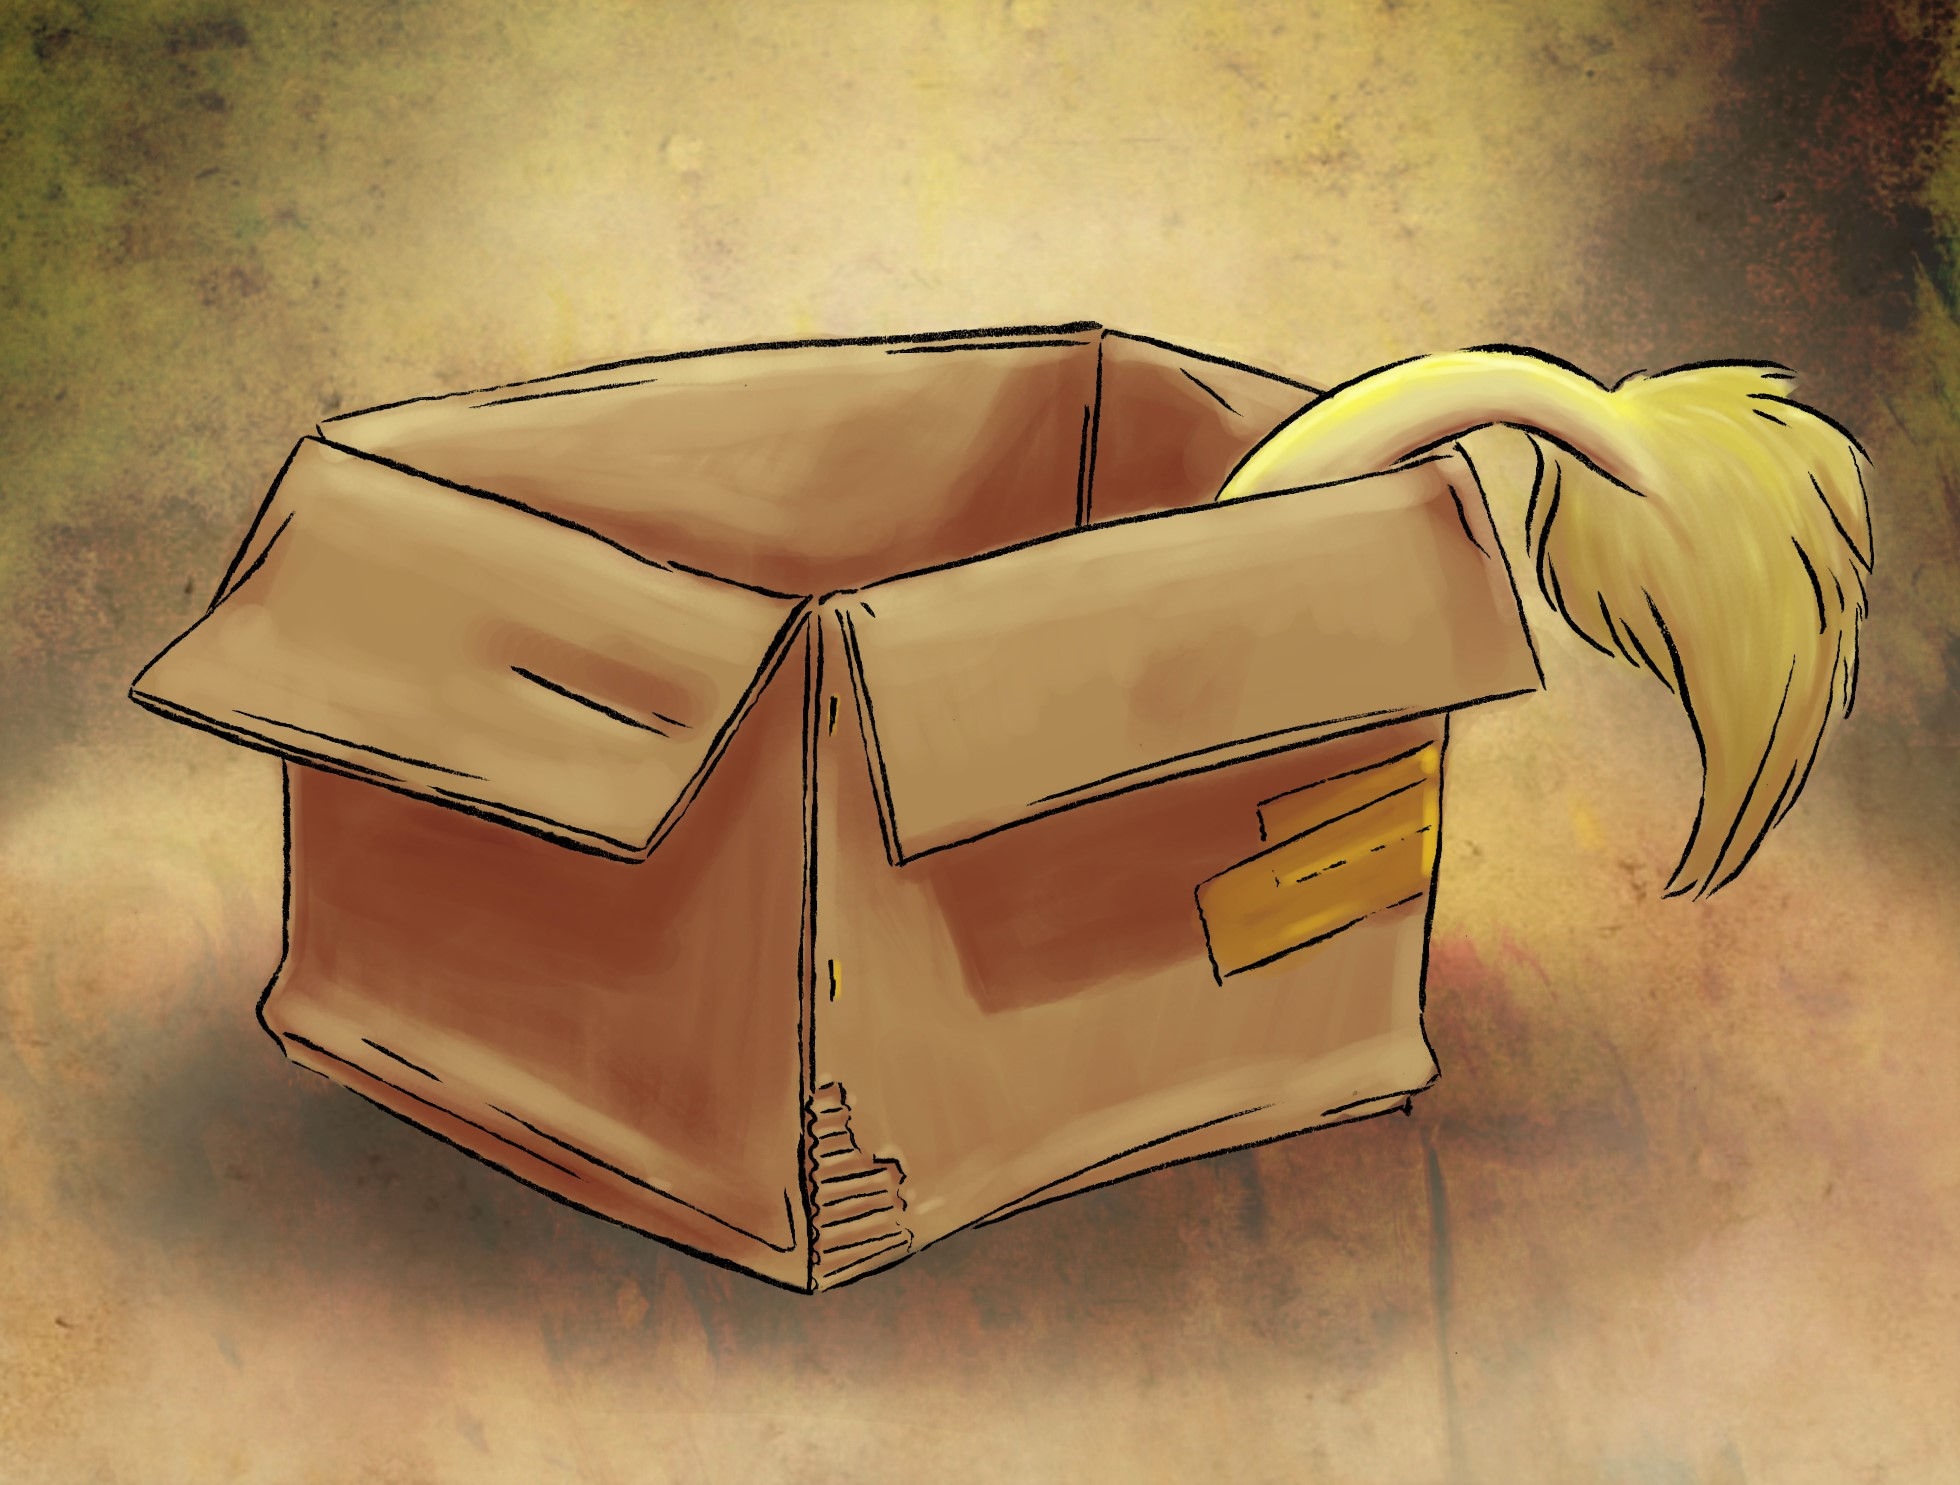 Lion in a Box